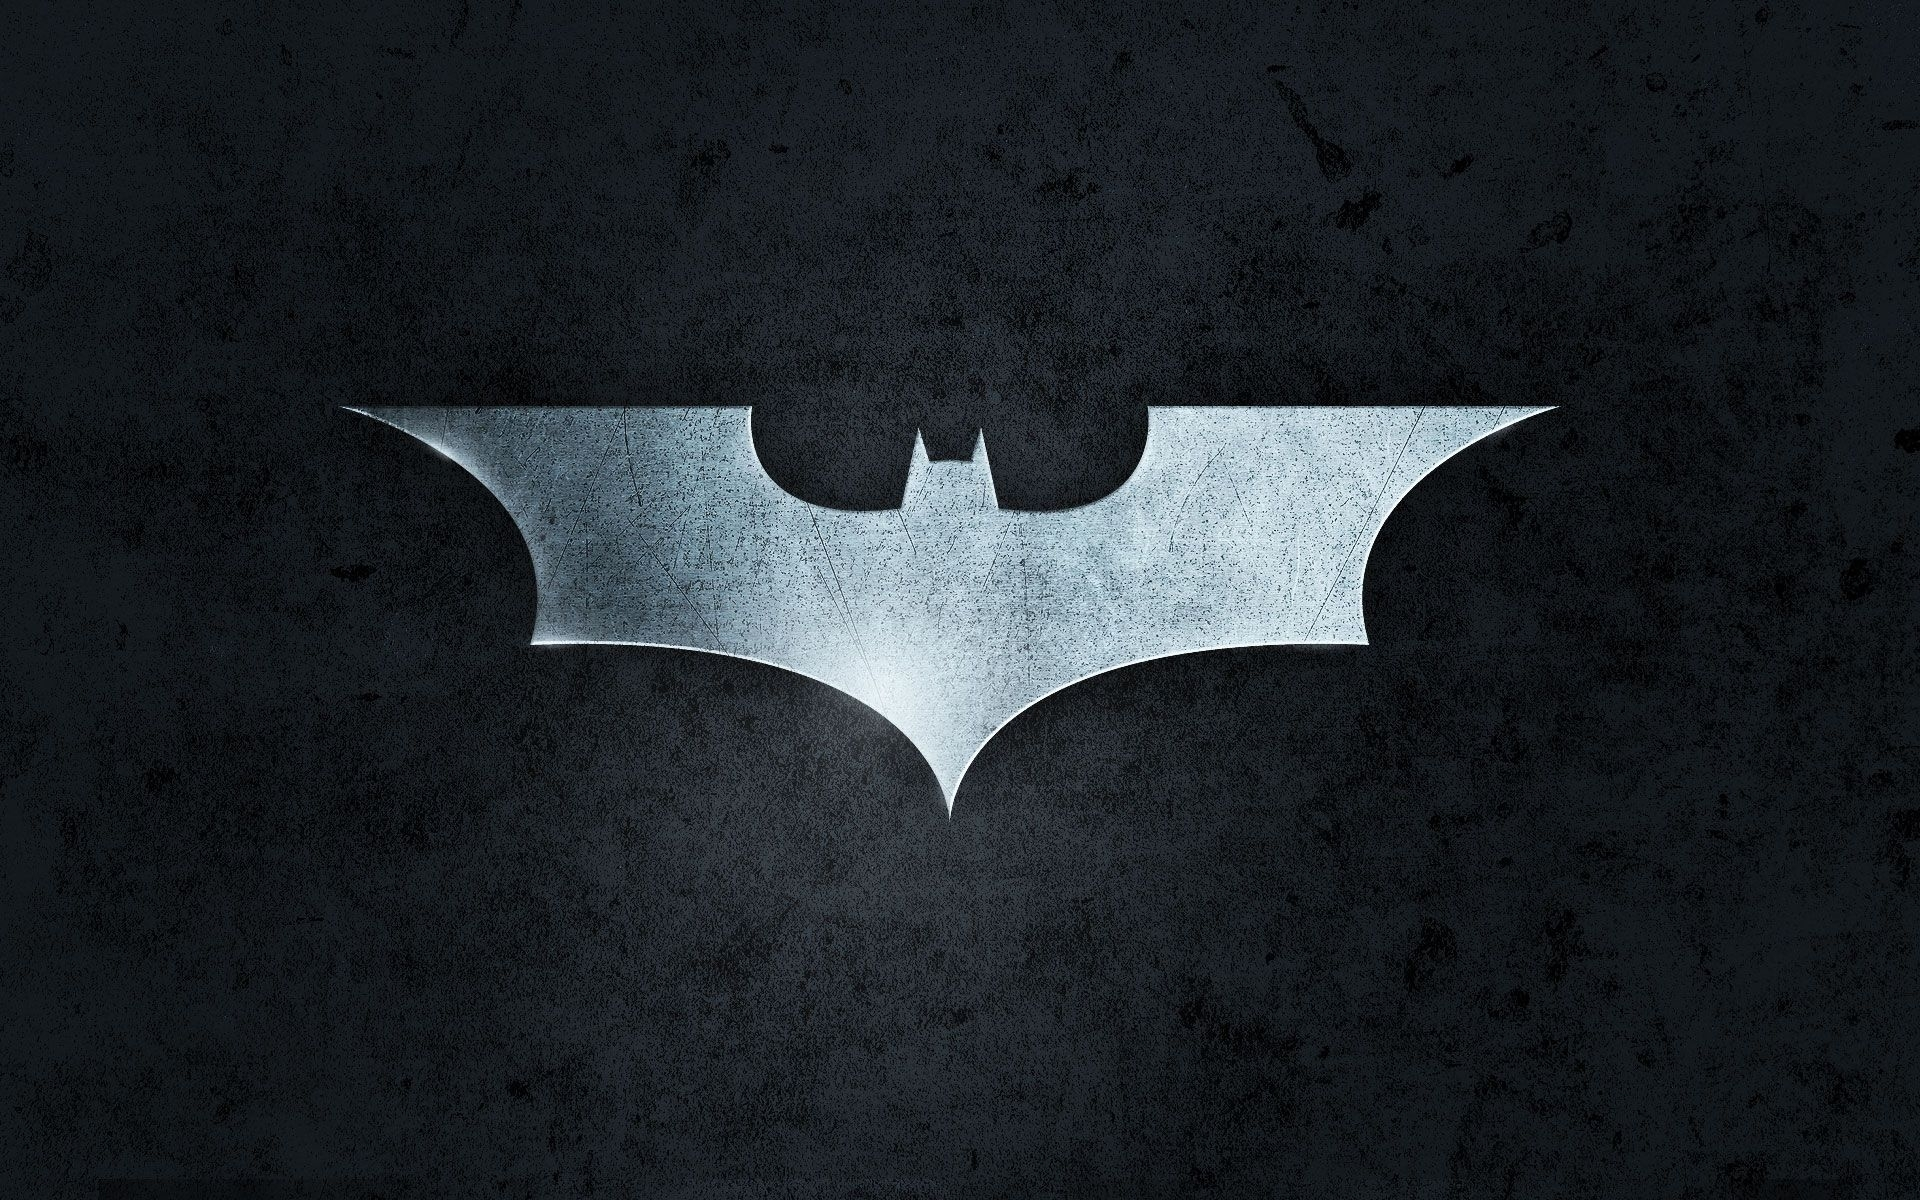 download free batman logo wallpapers for your mobile phone| hd